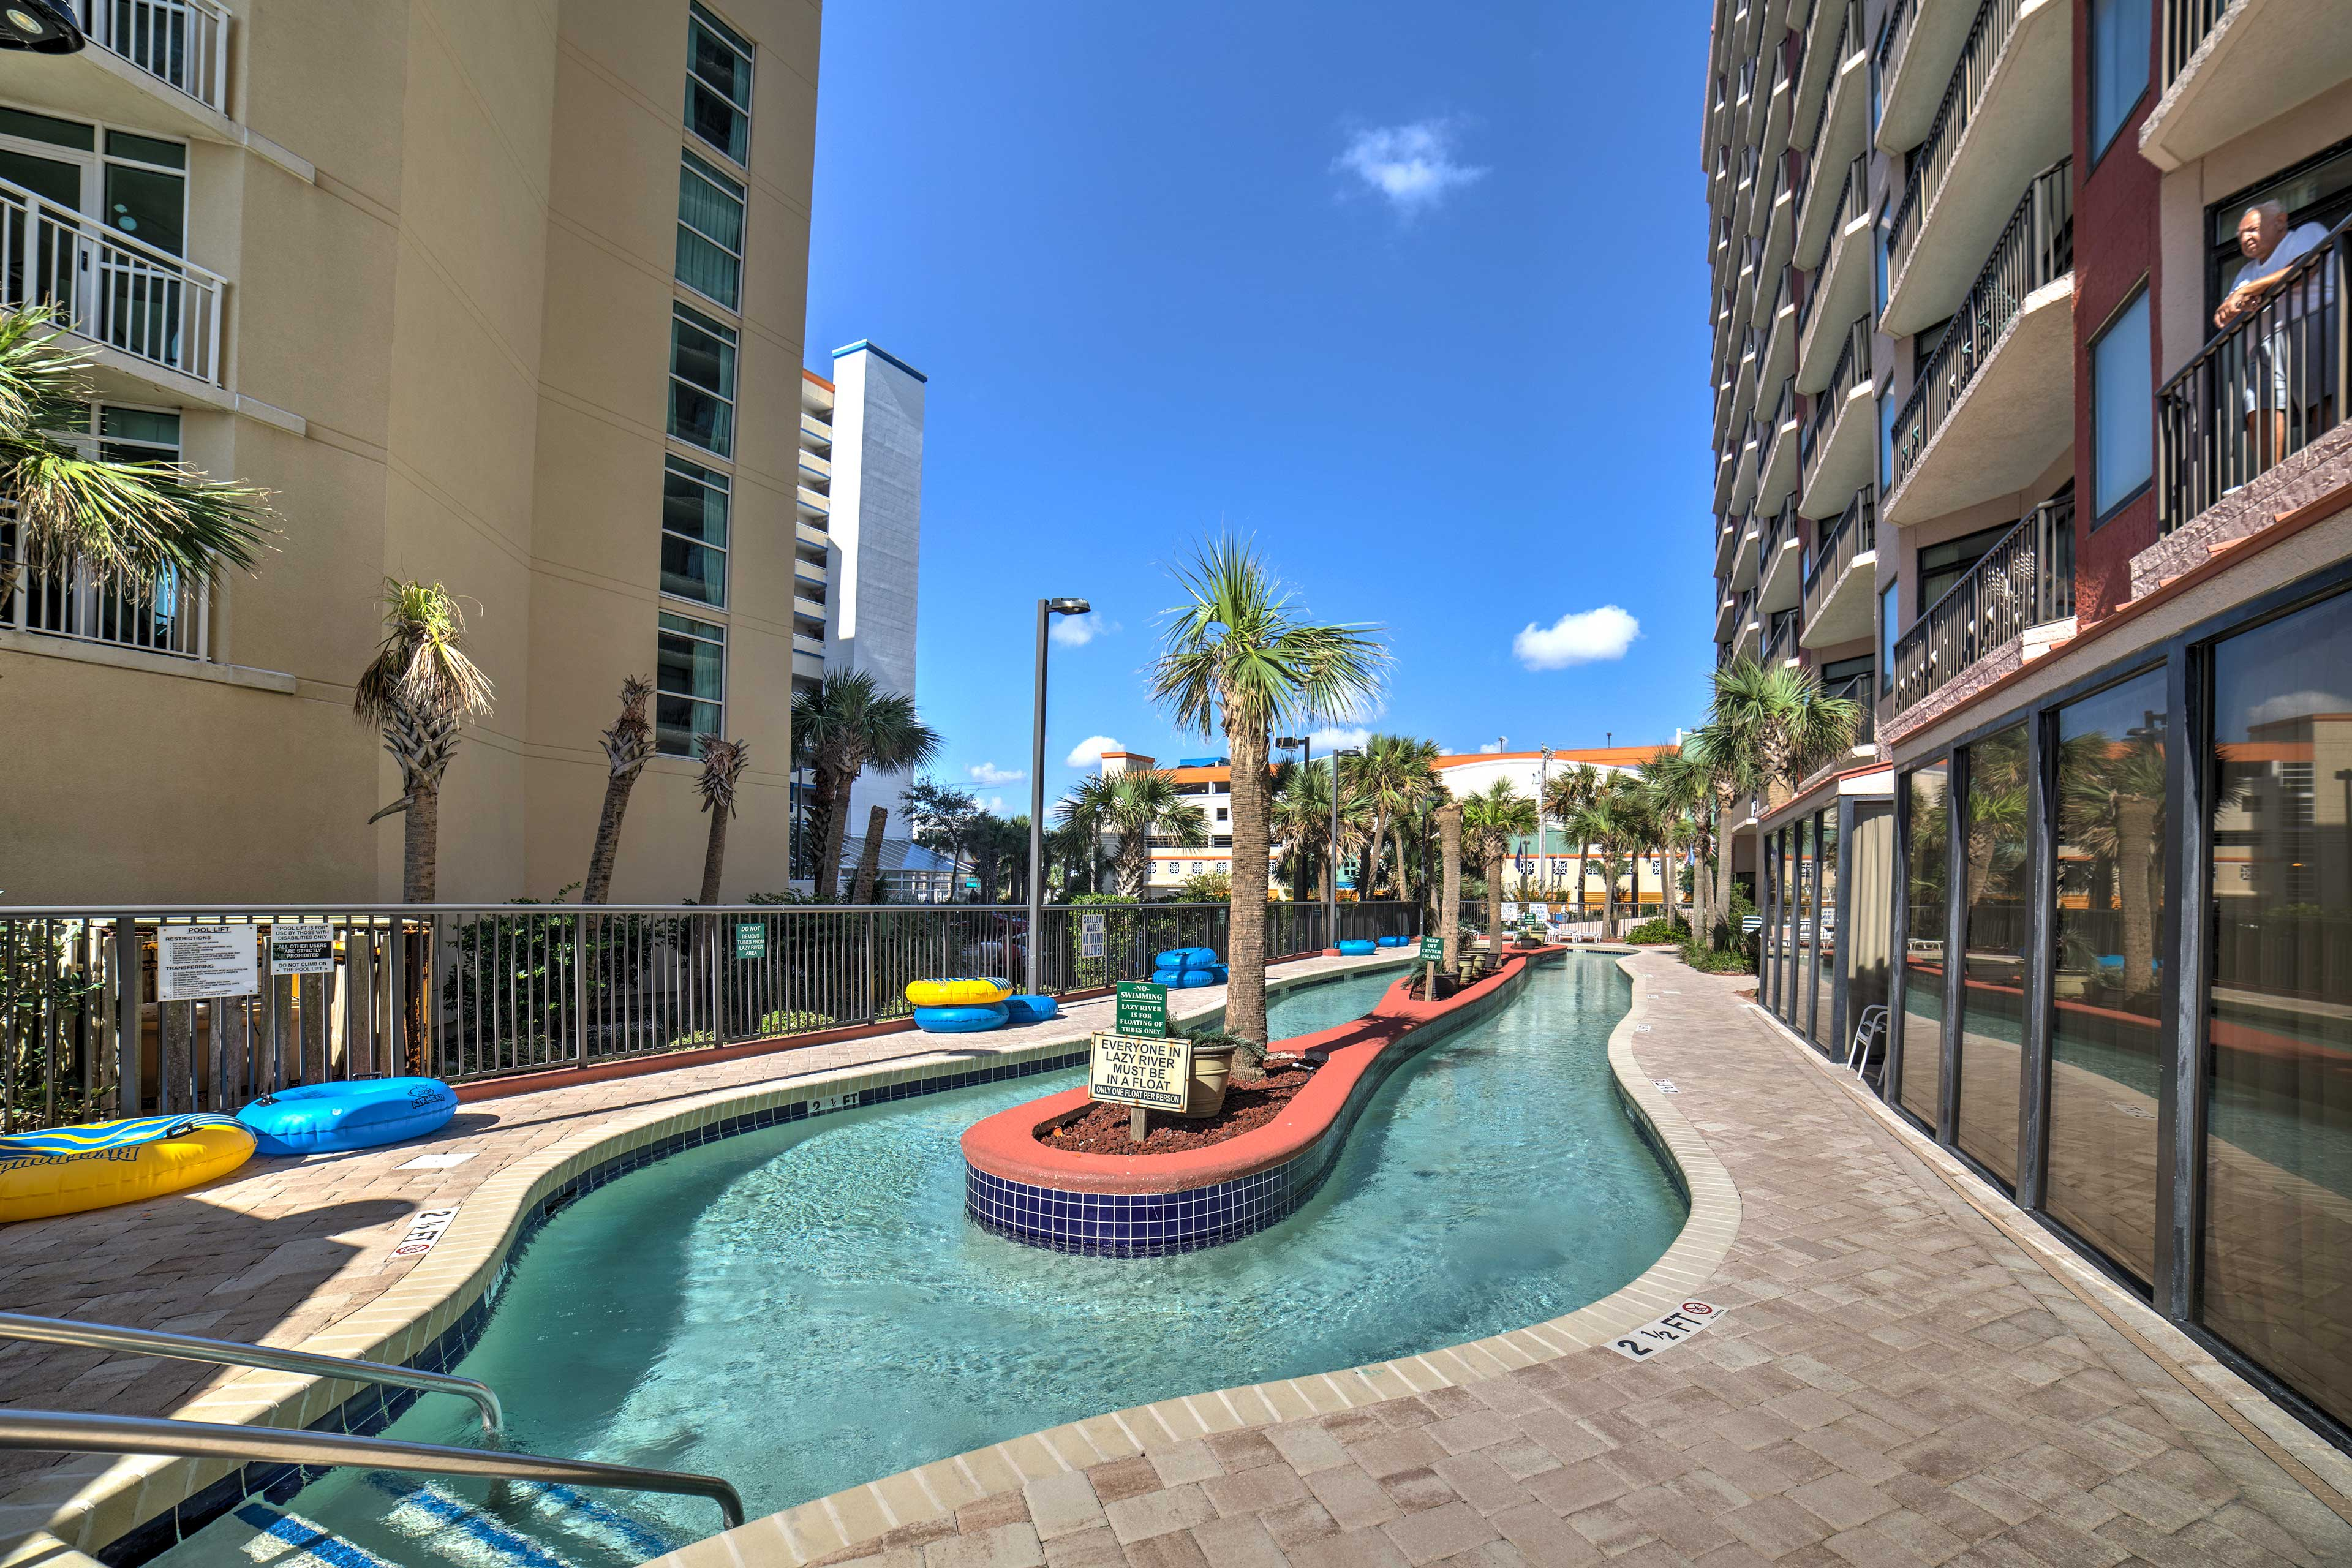 Your worries will float away in the lazy river.